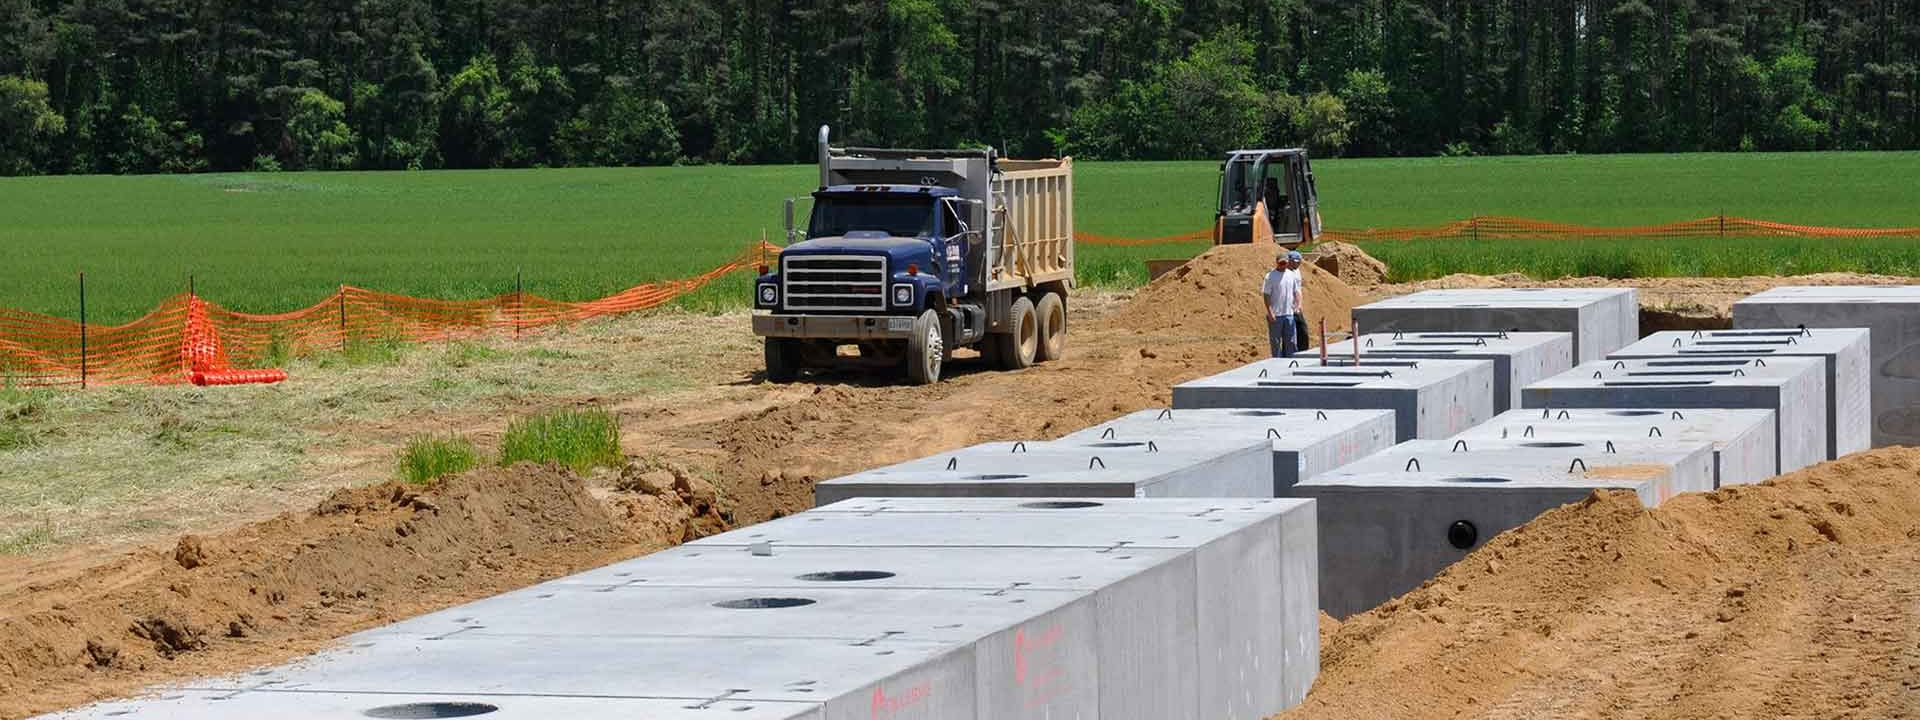 Are Septic Systems Bad for the Environment?